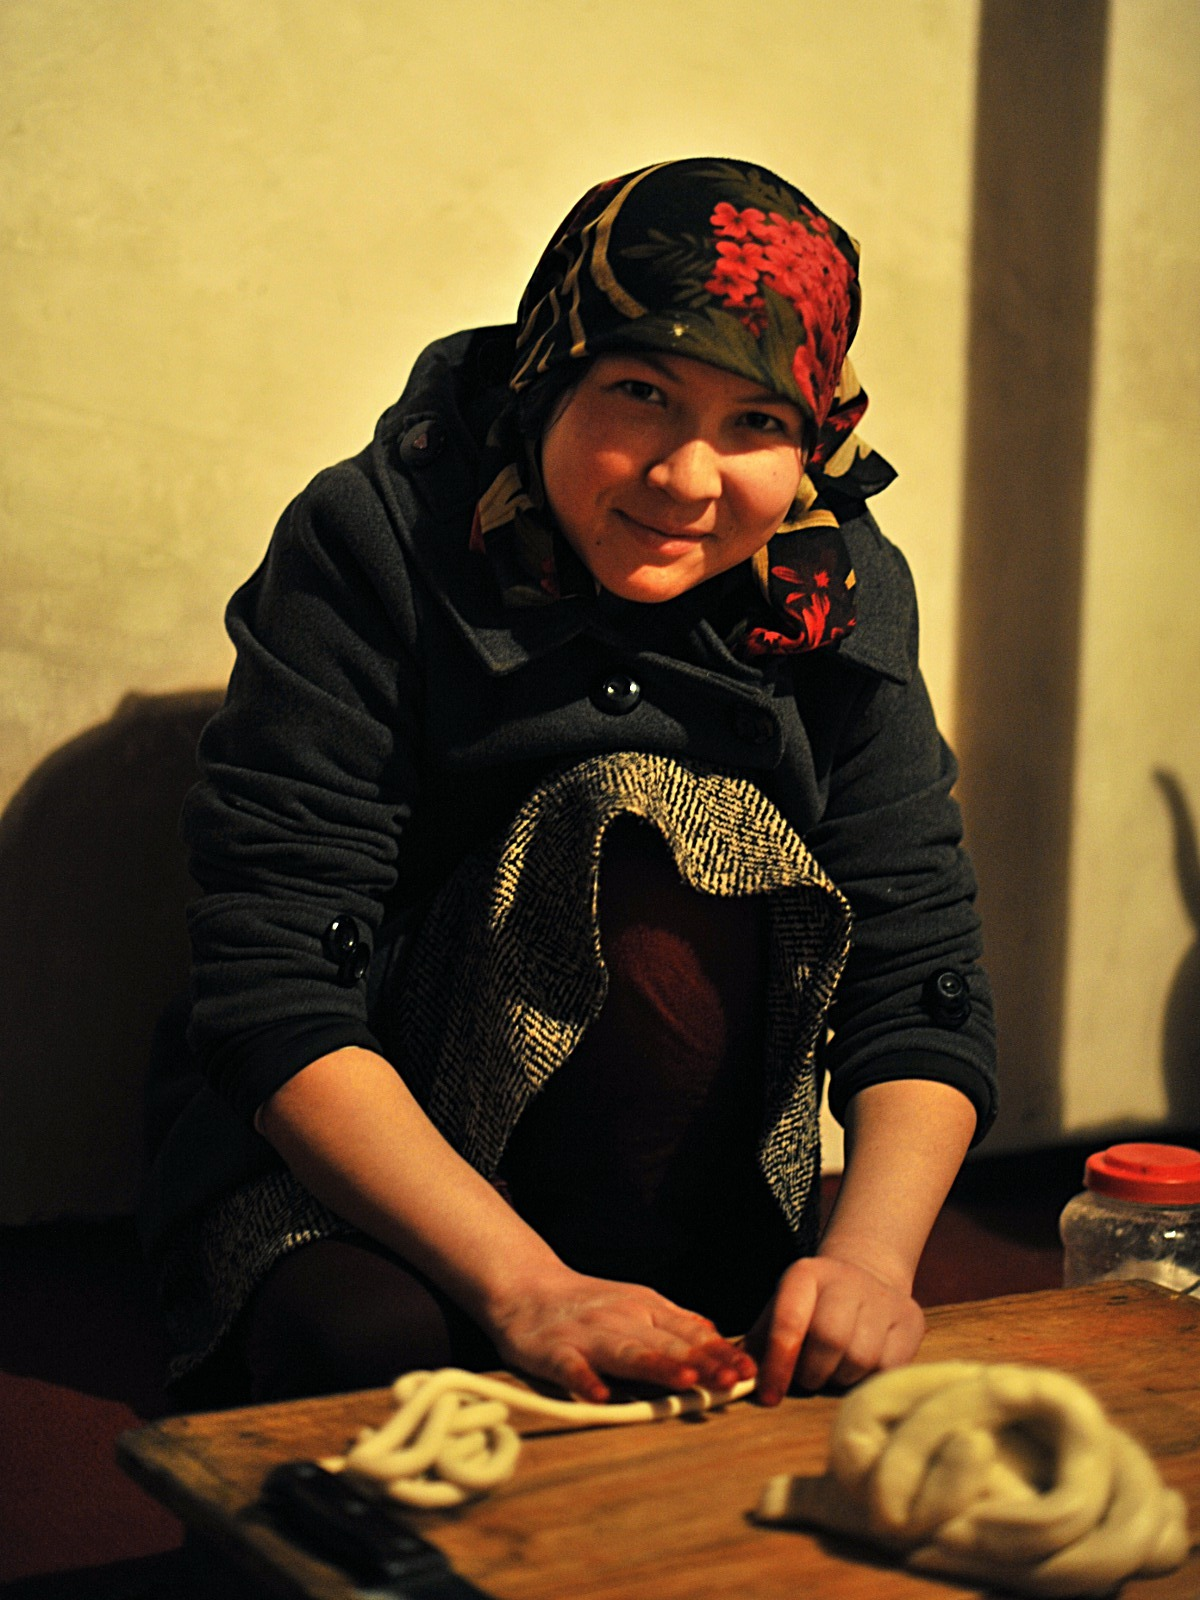 Young Uyghur Girl Preparing Noodles for Dinner, Kashgar 2012